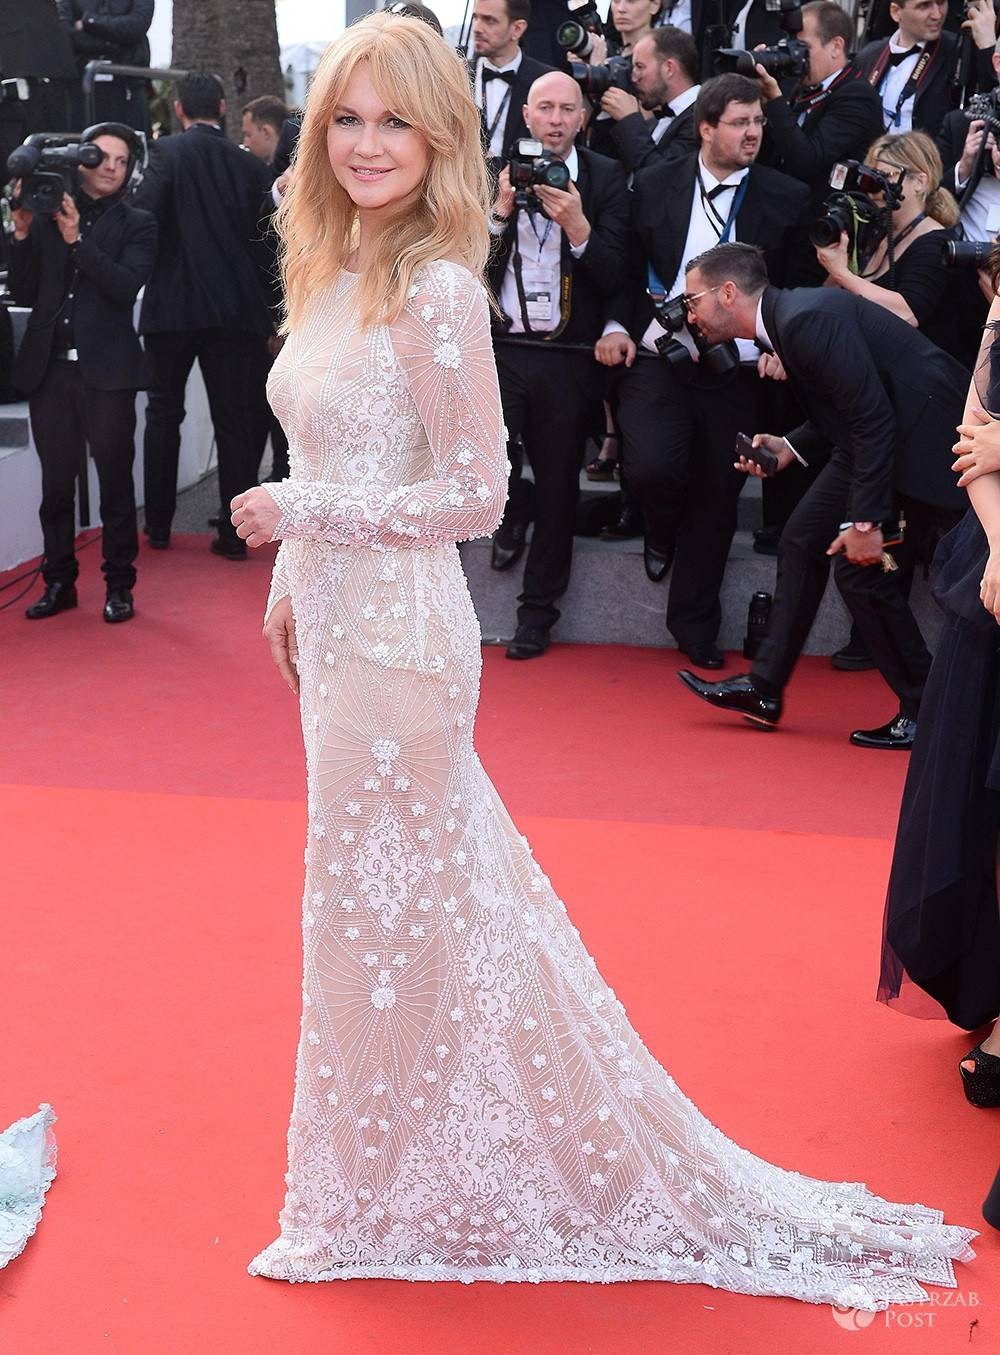 Grażyna Torbicka - Cannes 2017, The Beguiled